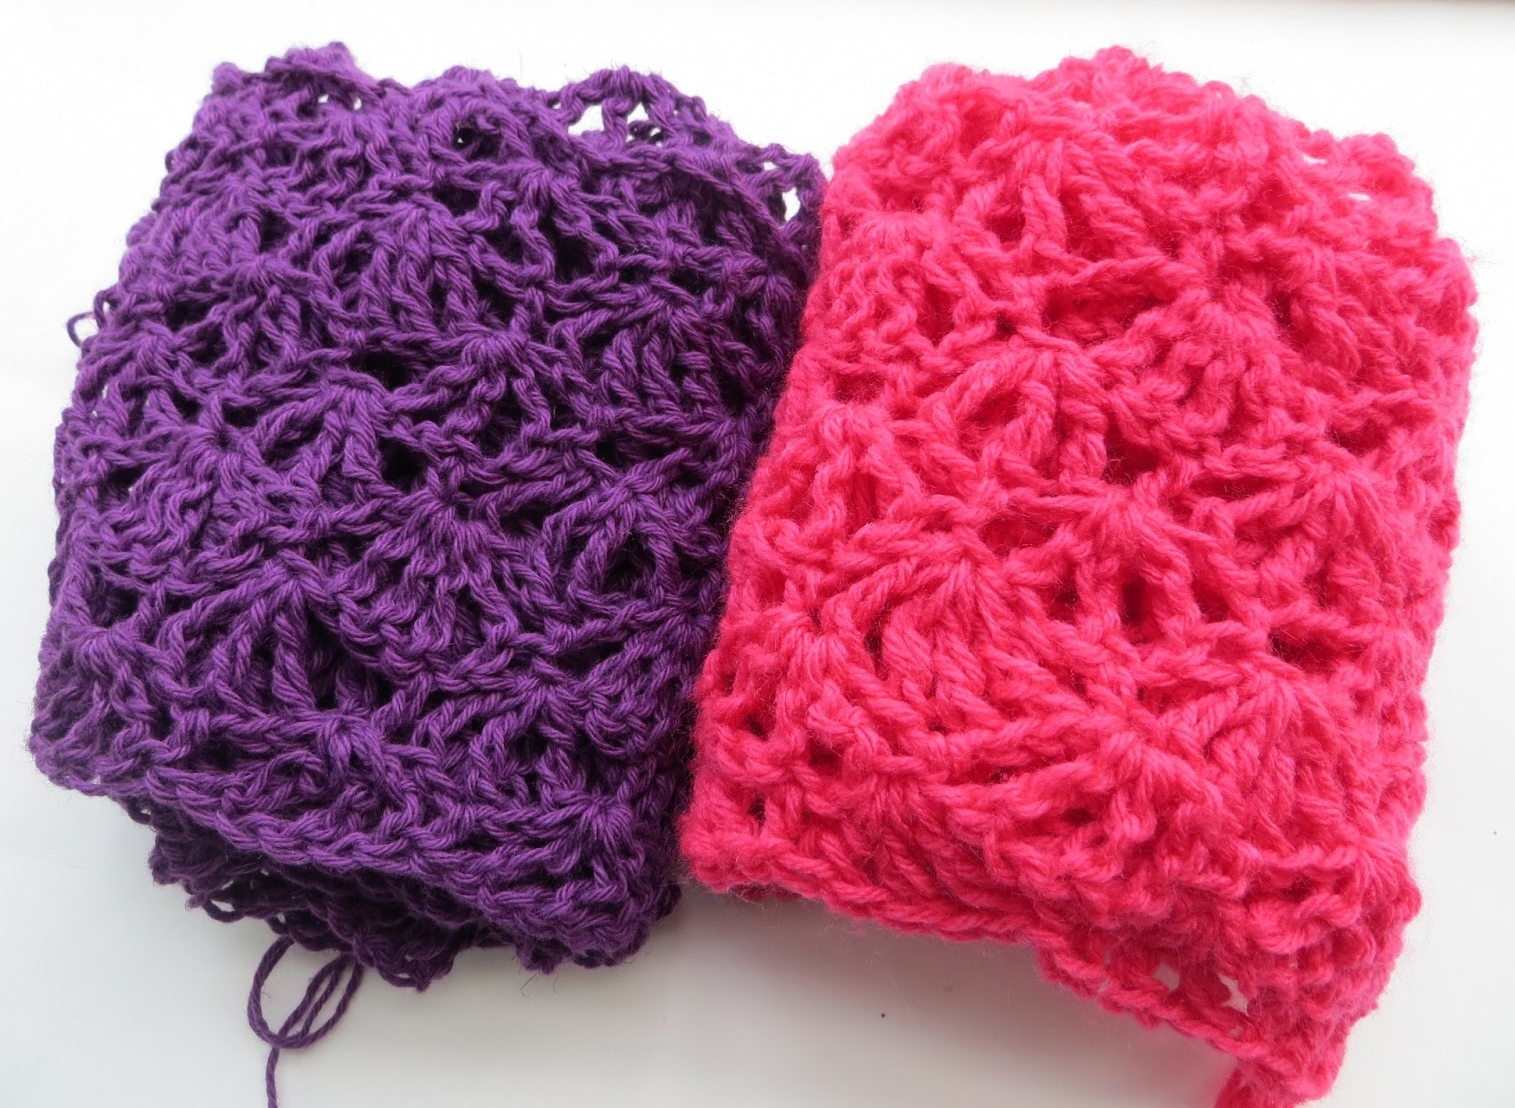 Crocheting Videos : Crocheting Projects Alana lacy scarf, free crochet